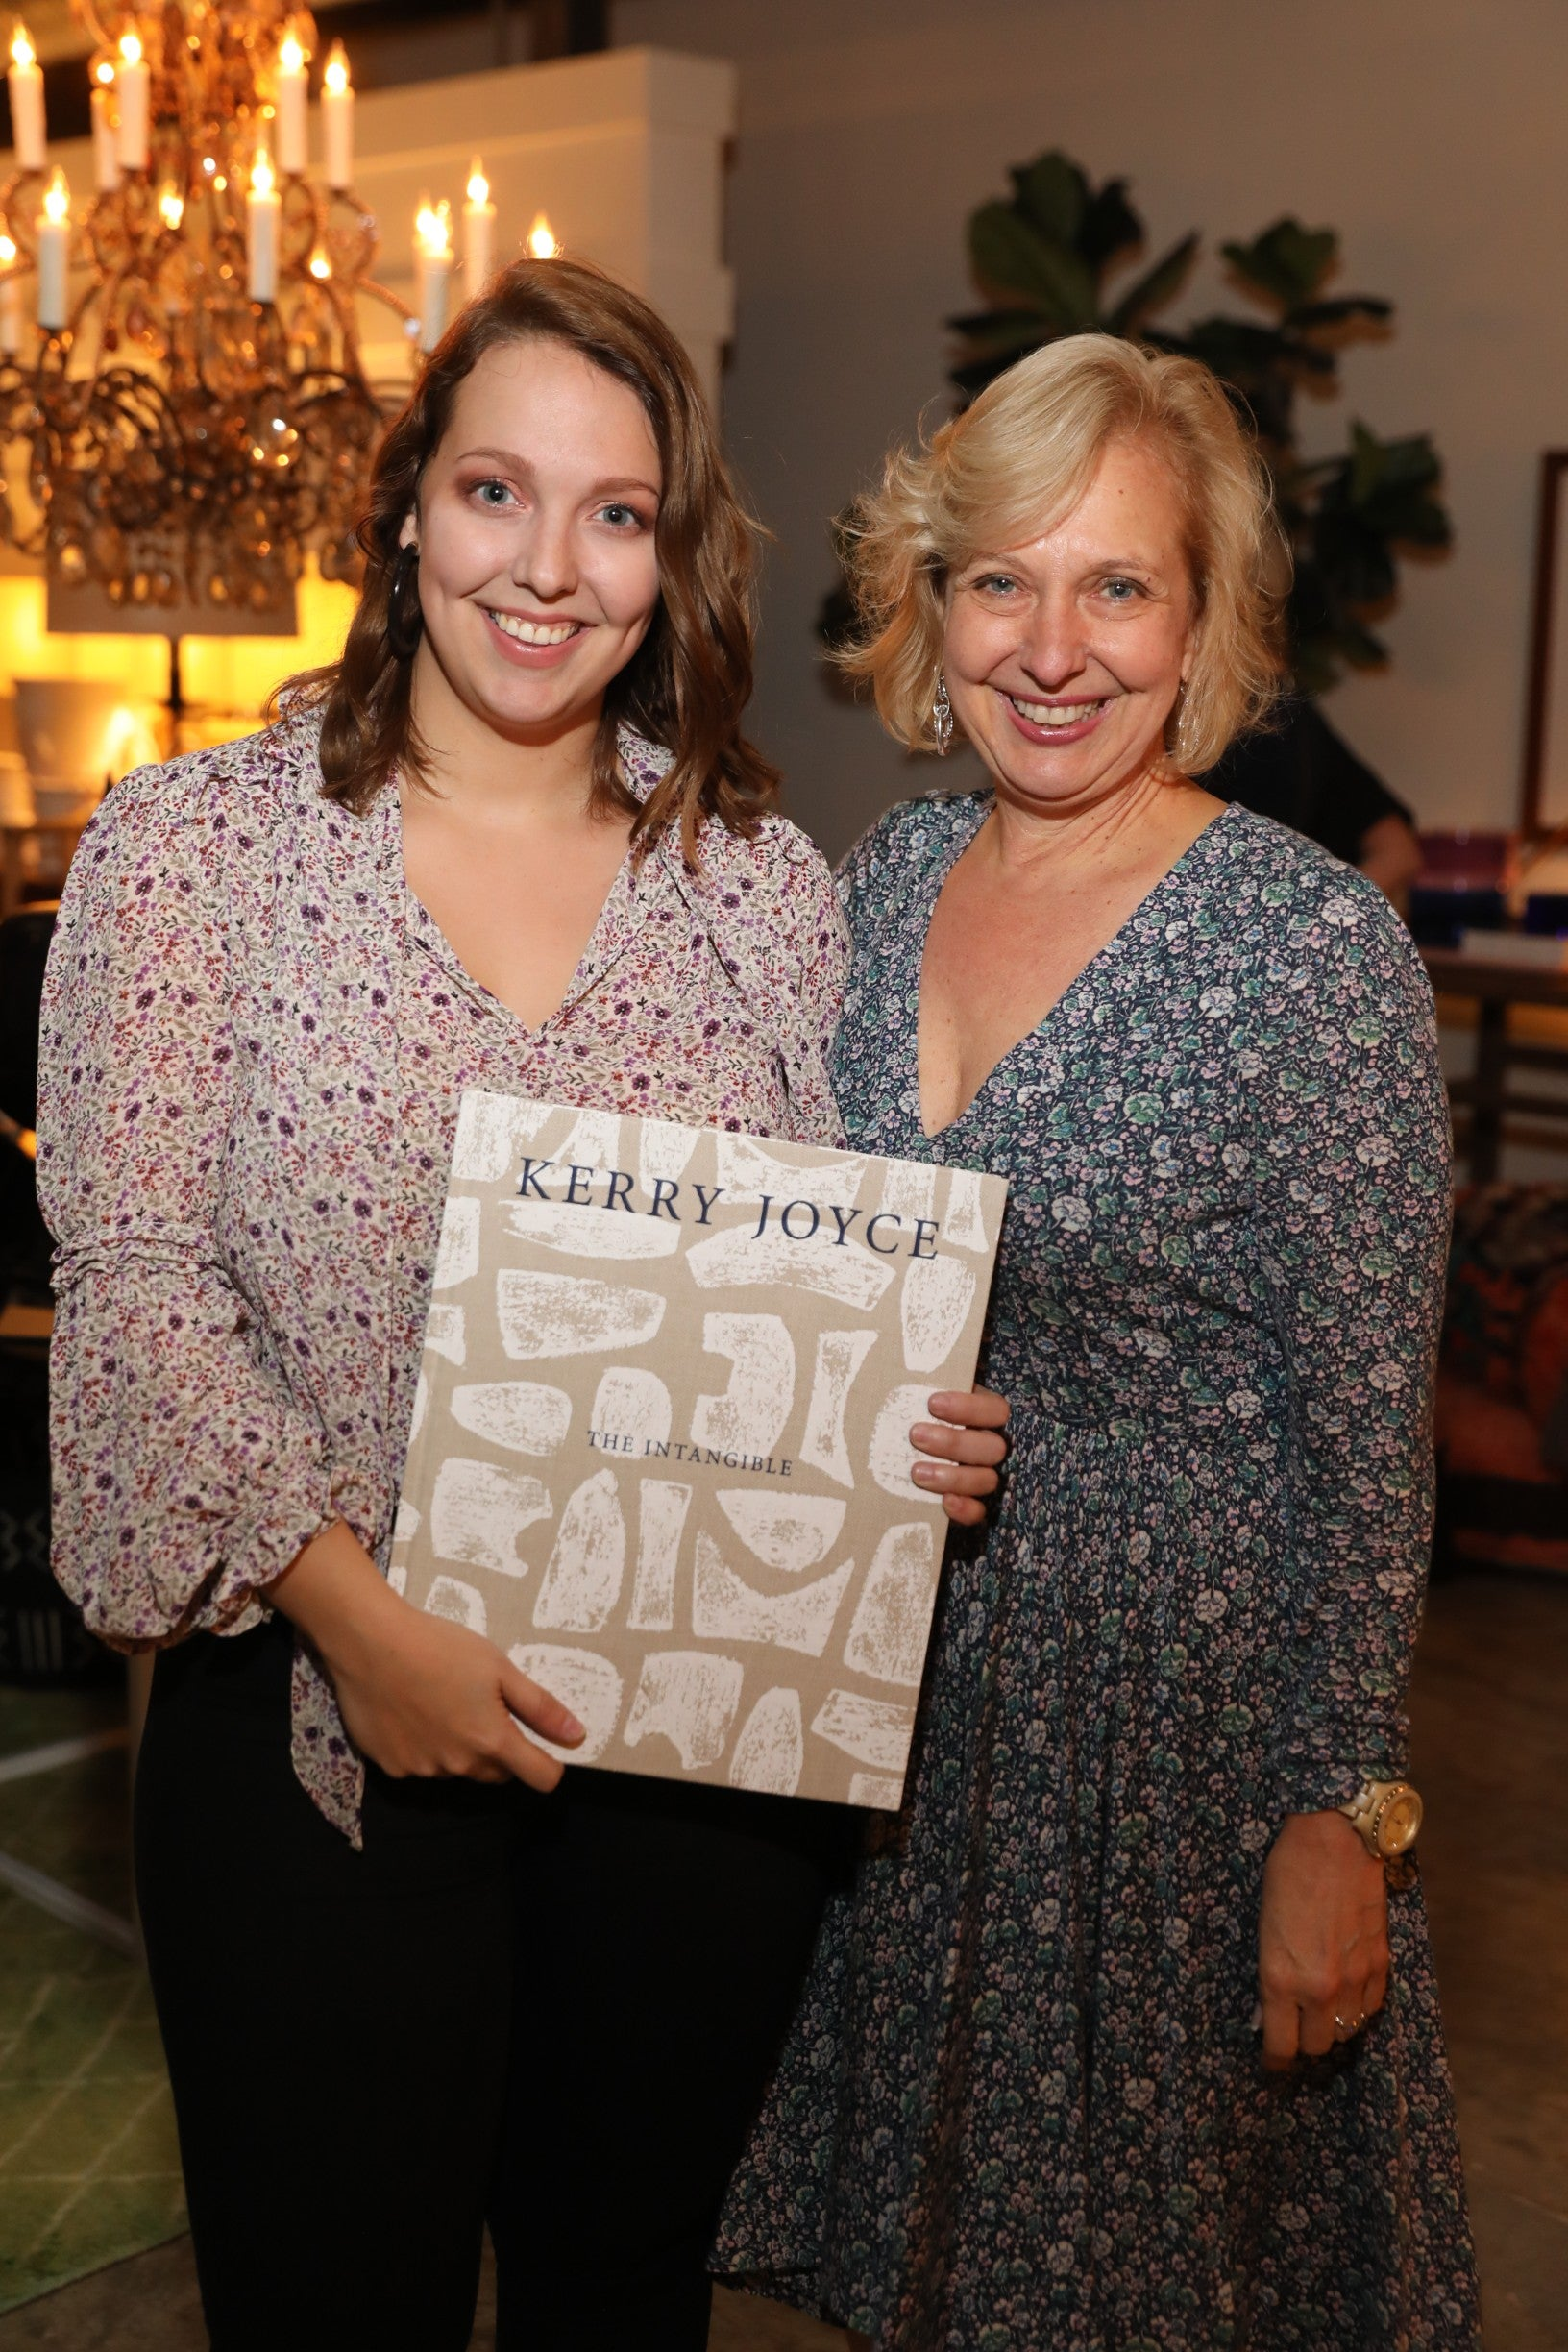 Book Signing with Kerry Joyce and Milieu Magazine